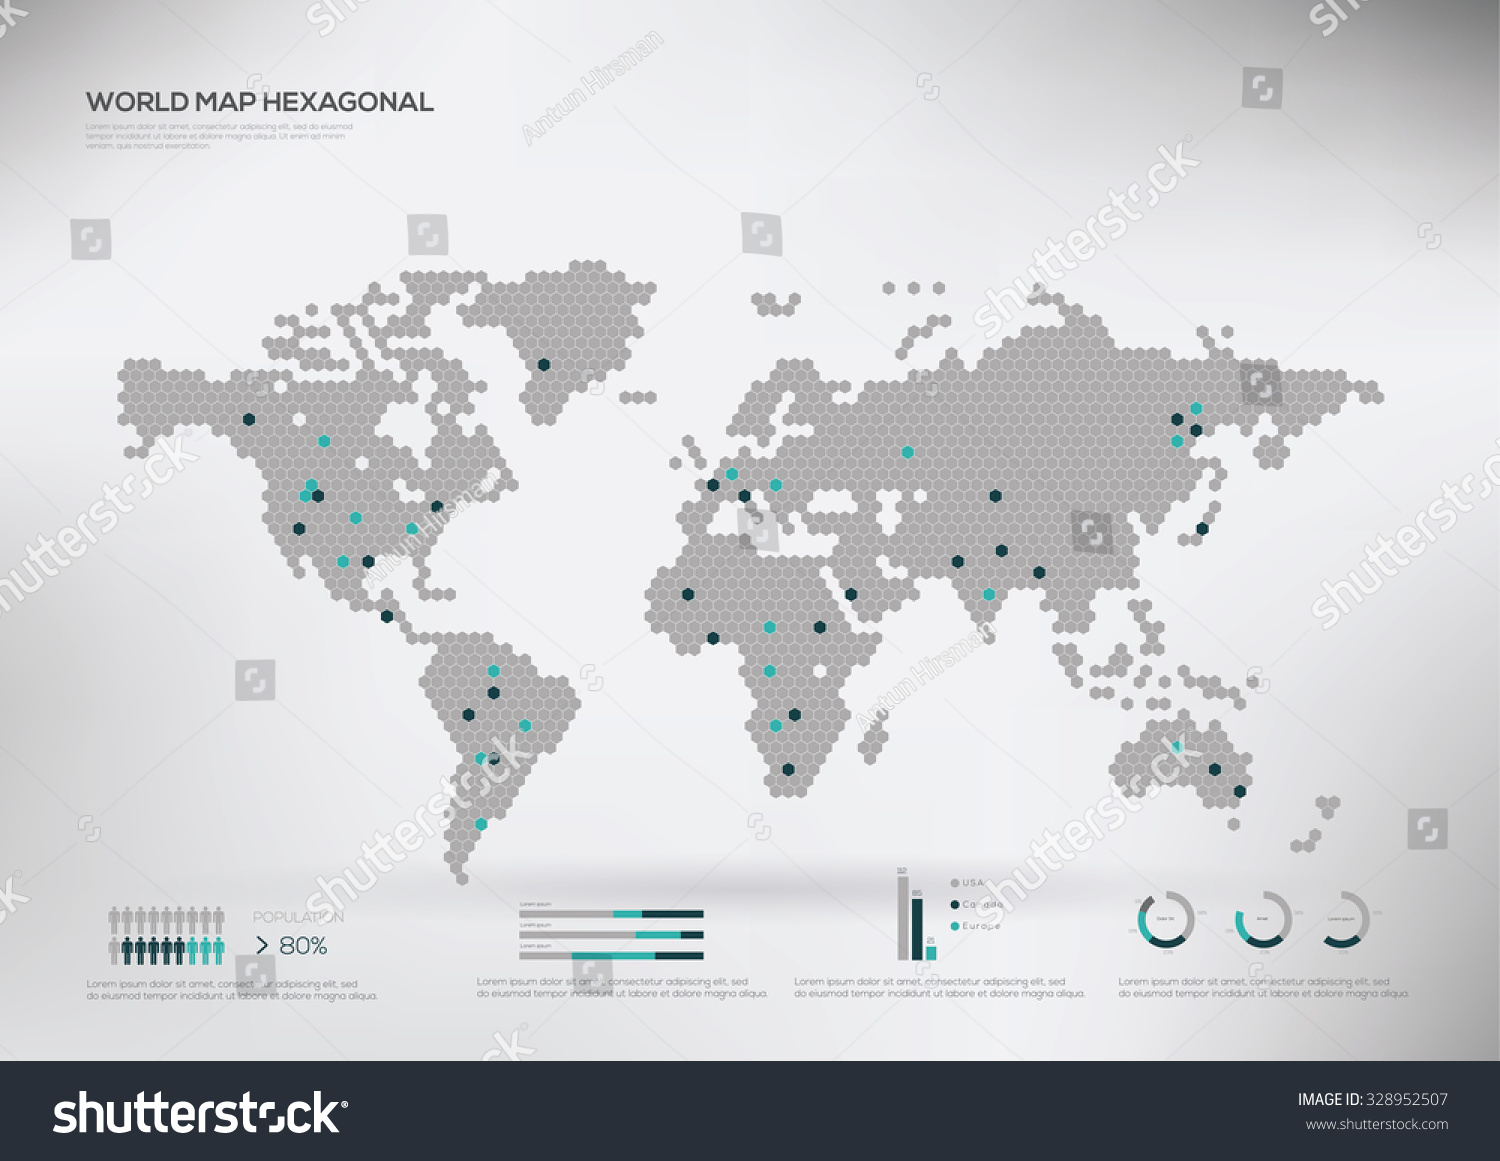 Hexagon shape world map infographic vector stock vector 328952507 hexagon shape world map infographic vector illustration gumiabroncs Gallery